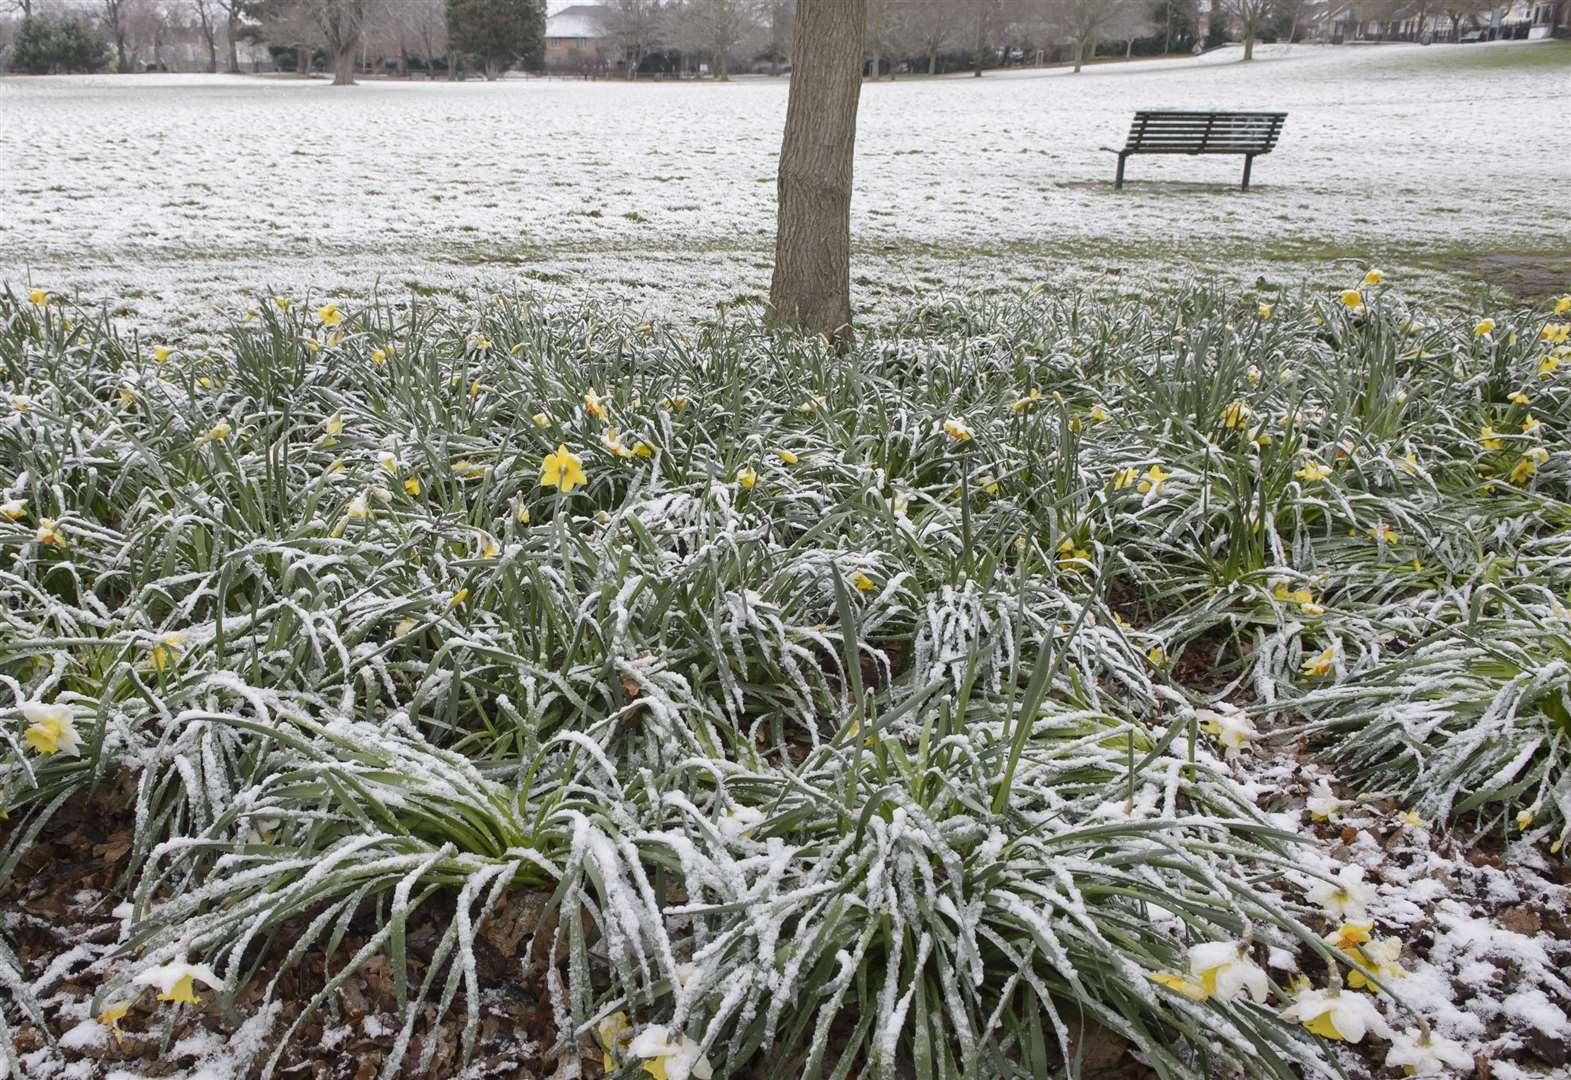 Light dusting of snow expected